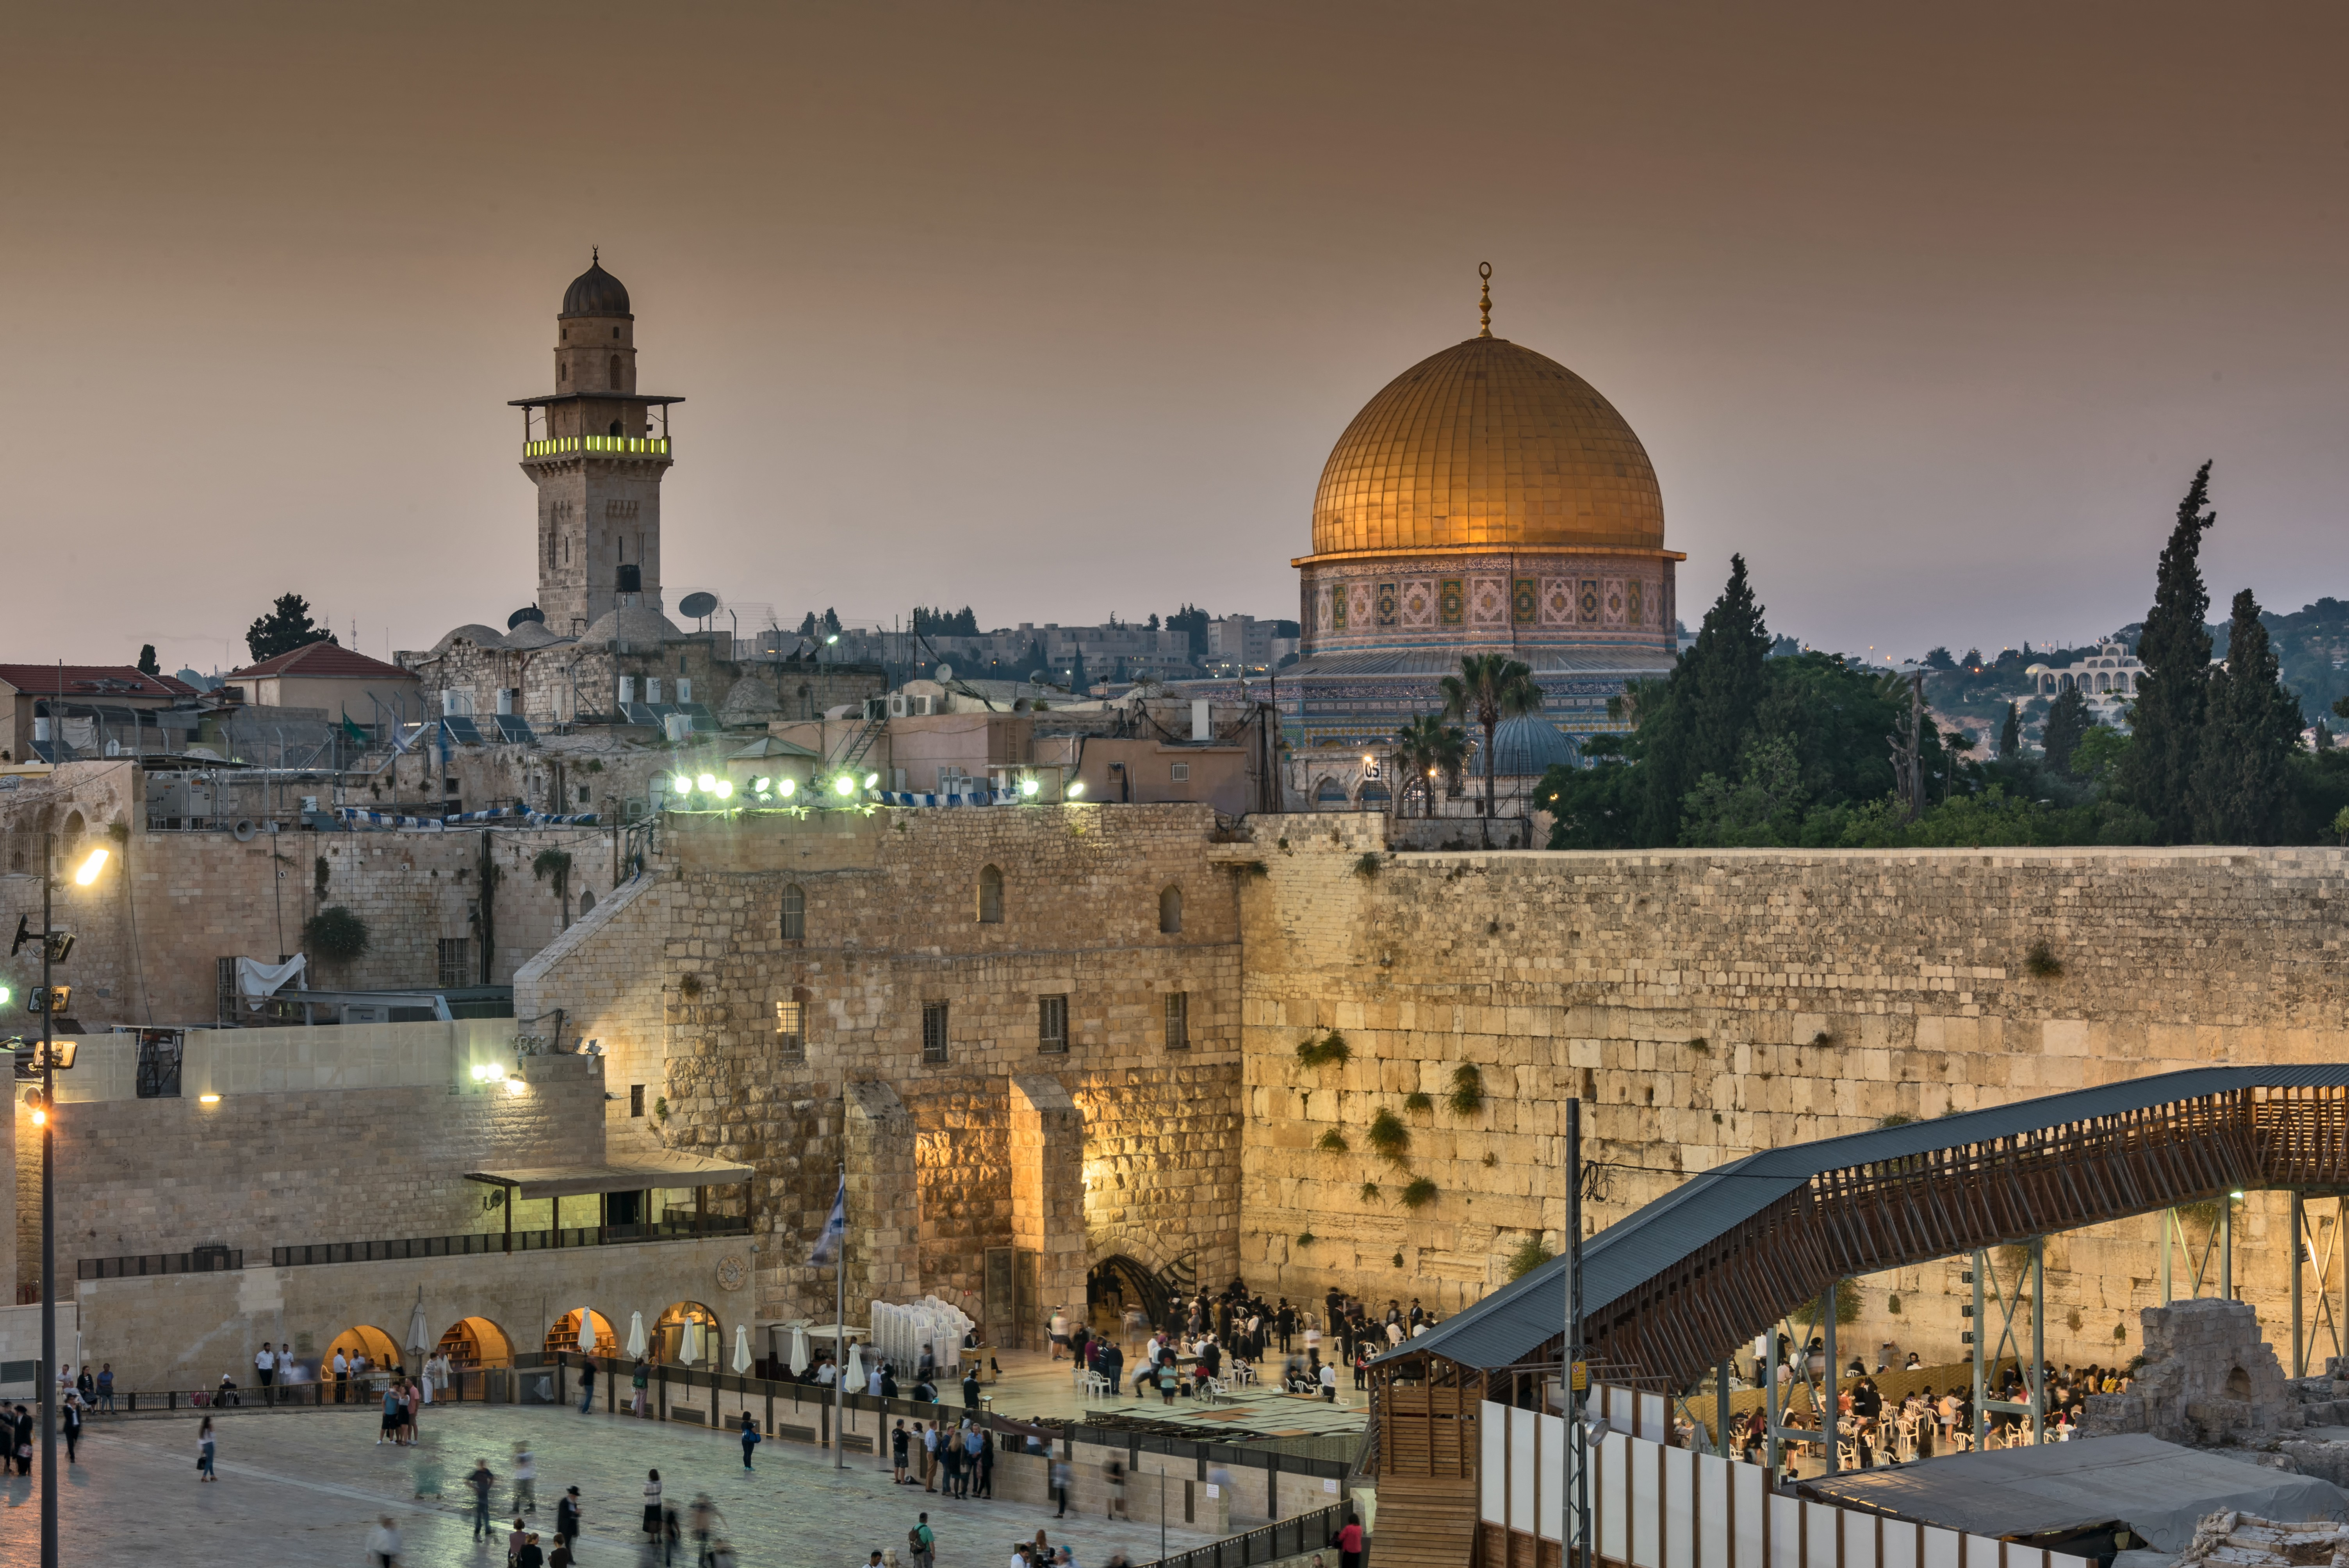 A view of Jerusalem's best known landmark the Dome of the Rock, a spectacular shrine on the site where Muhammad is said to have risen to heaven. (Getty Images)